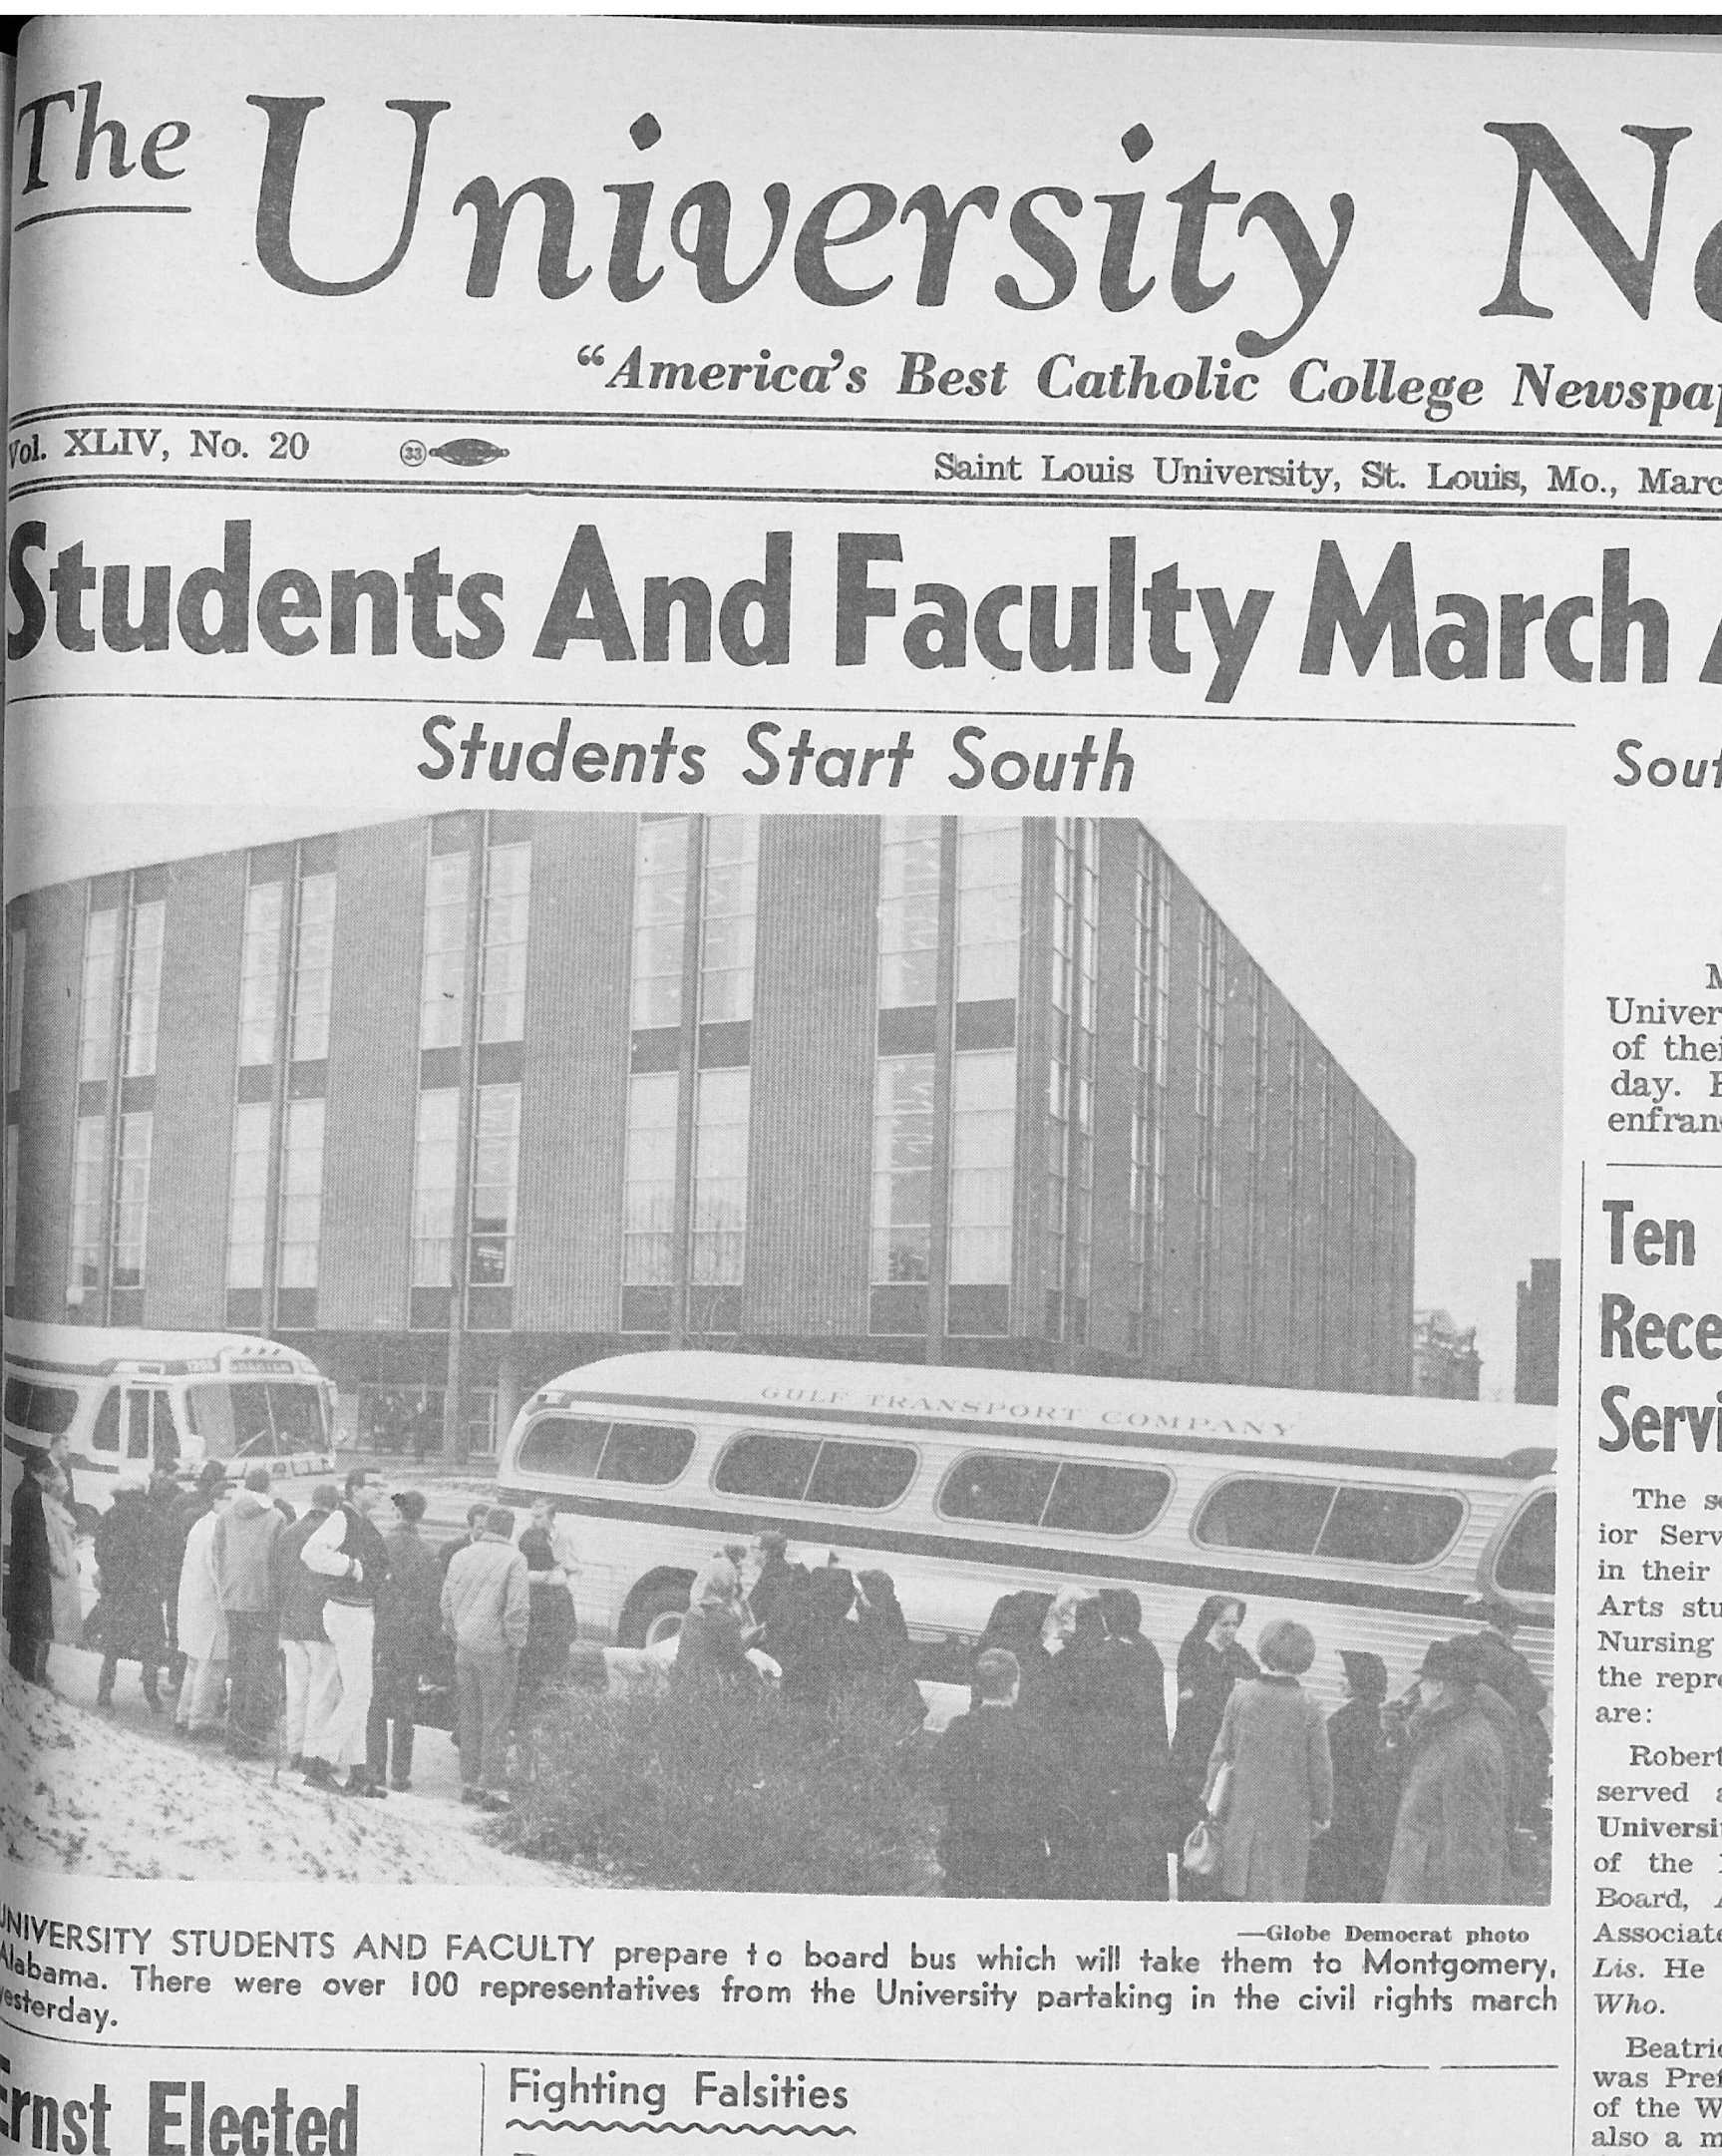 Selma: The Alabama town is one of numerous cities to be visited this spring break. SLU students participated in the seminal march that occurred there in 1965. The University News archives